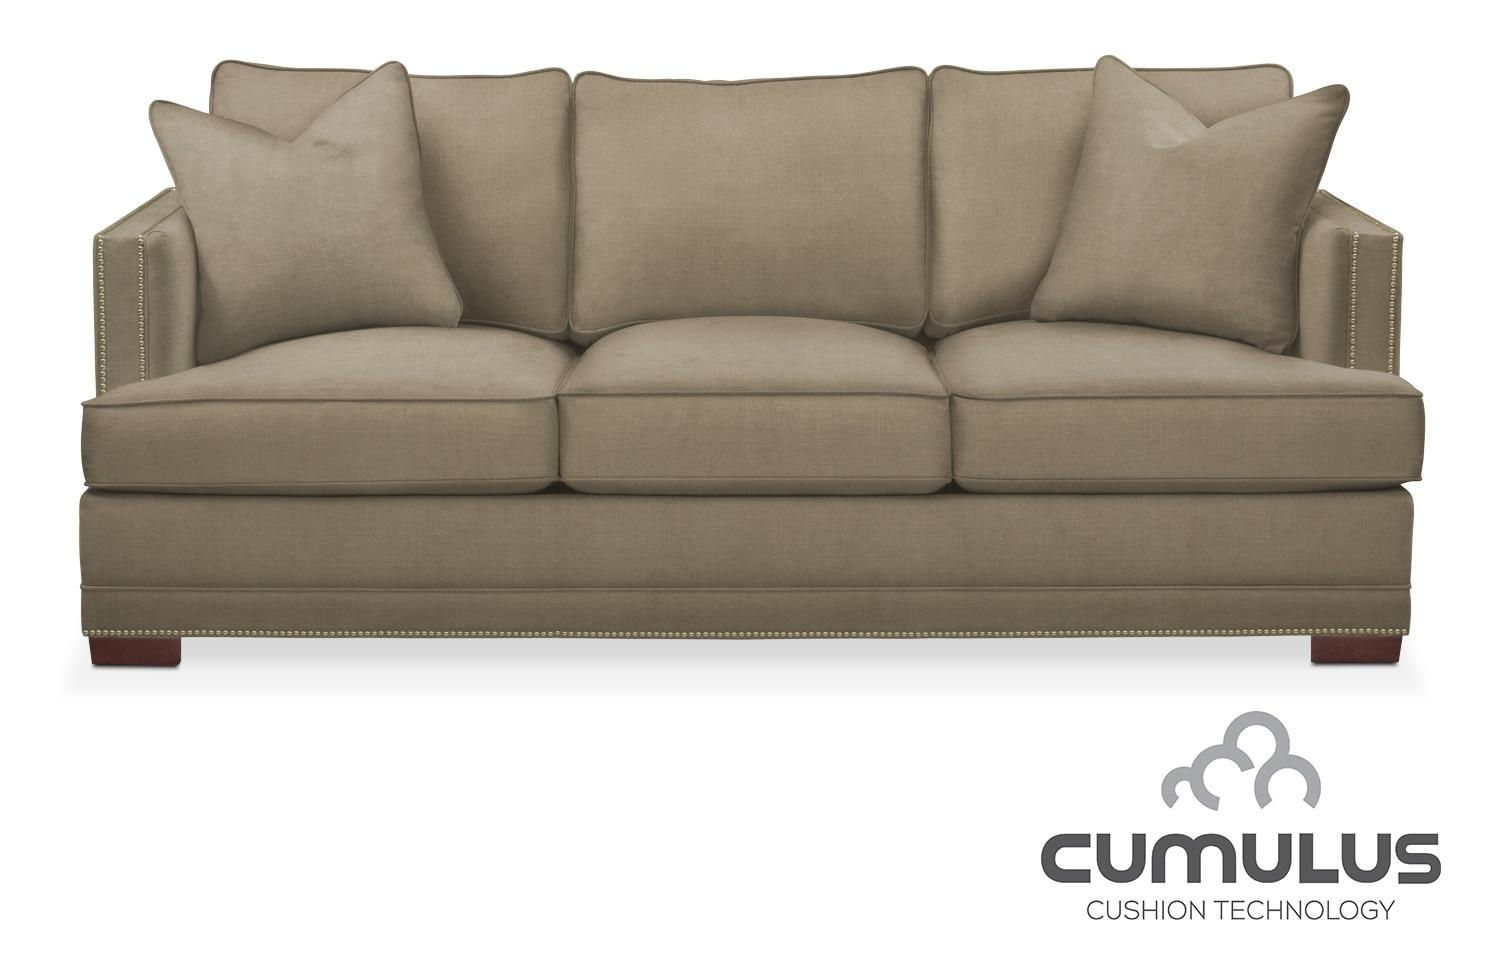 Sofas & Couches | Living Room Seating | Value City Furniture For Value City Sofas (View 13 of 20)